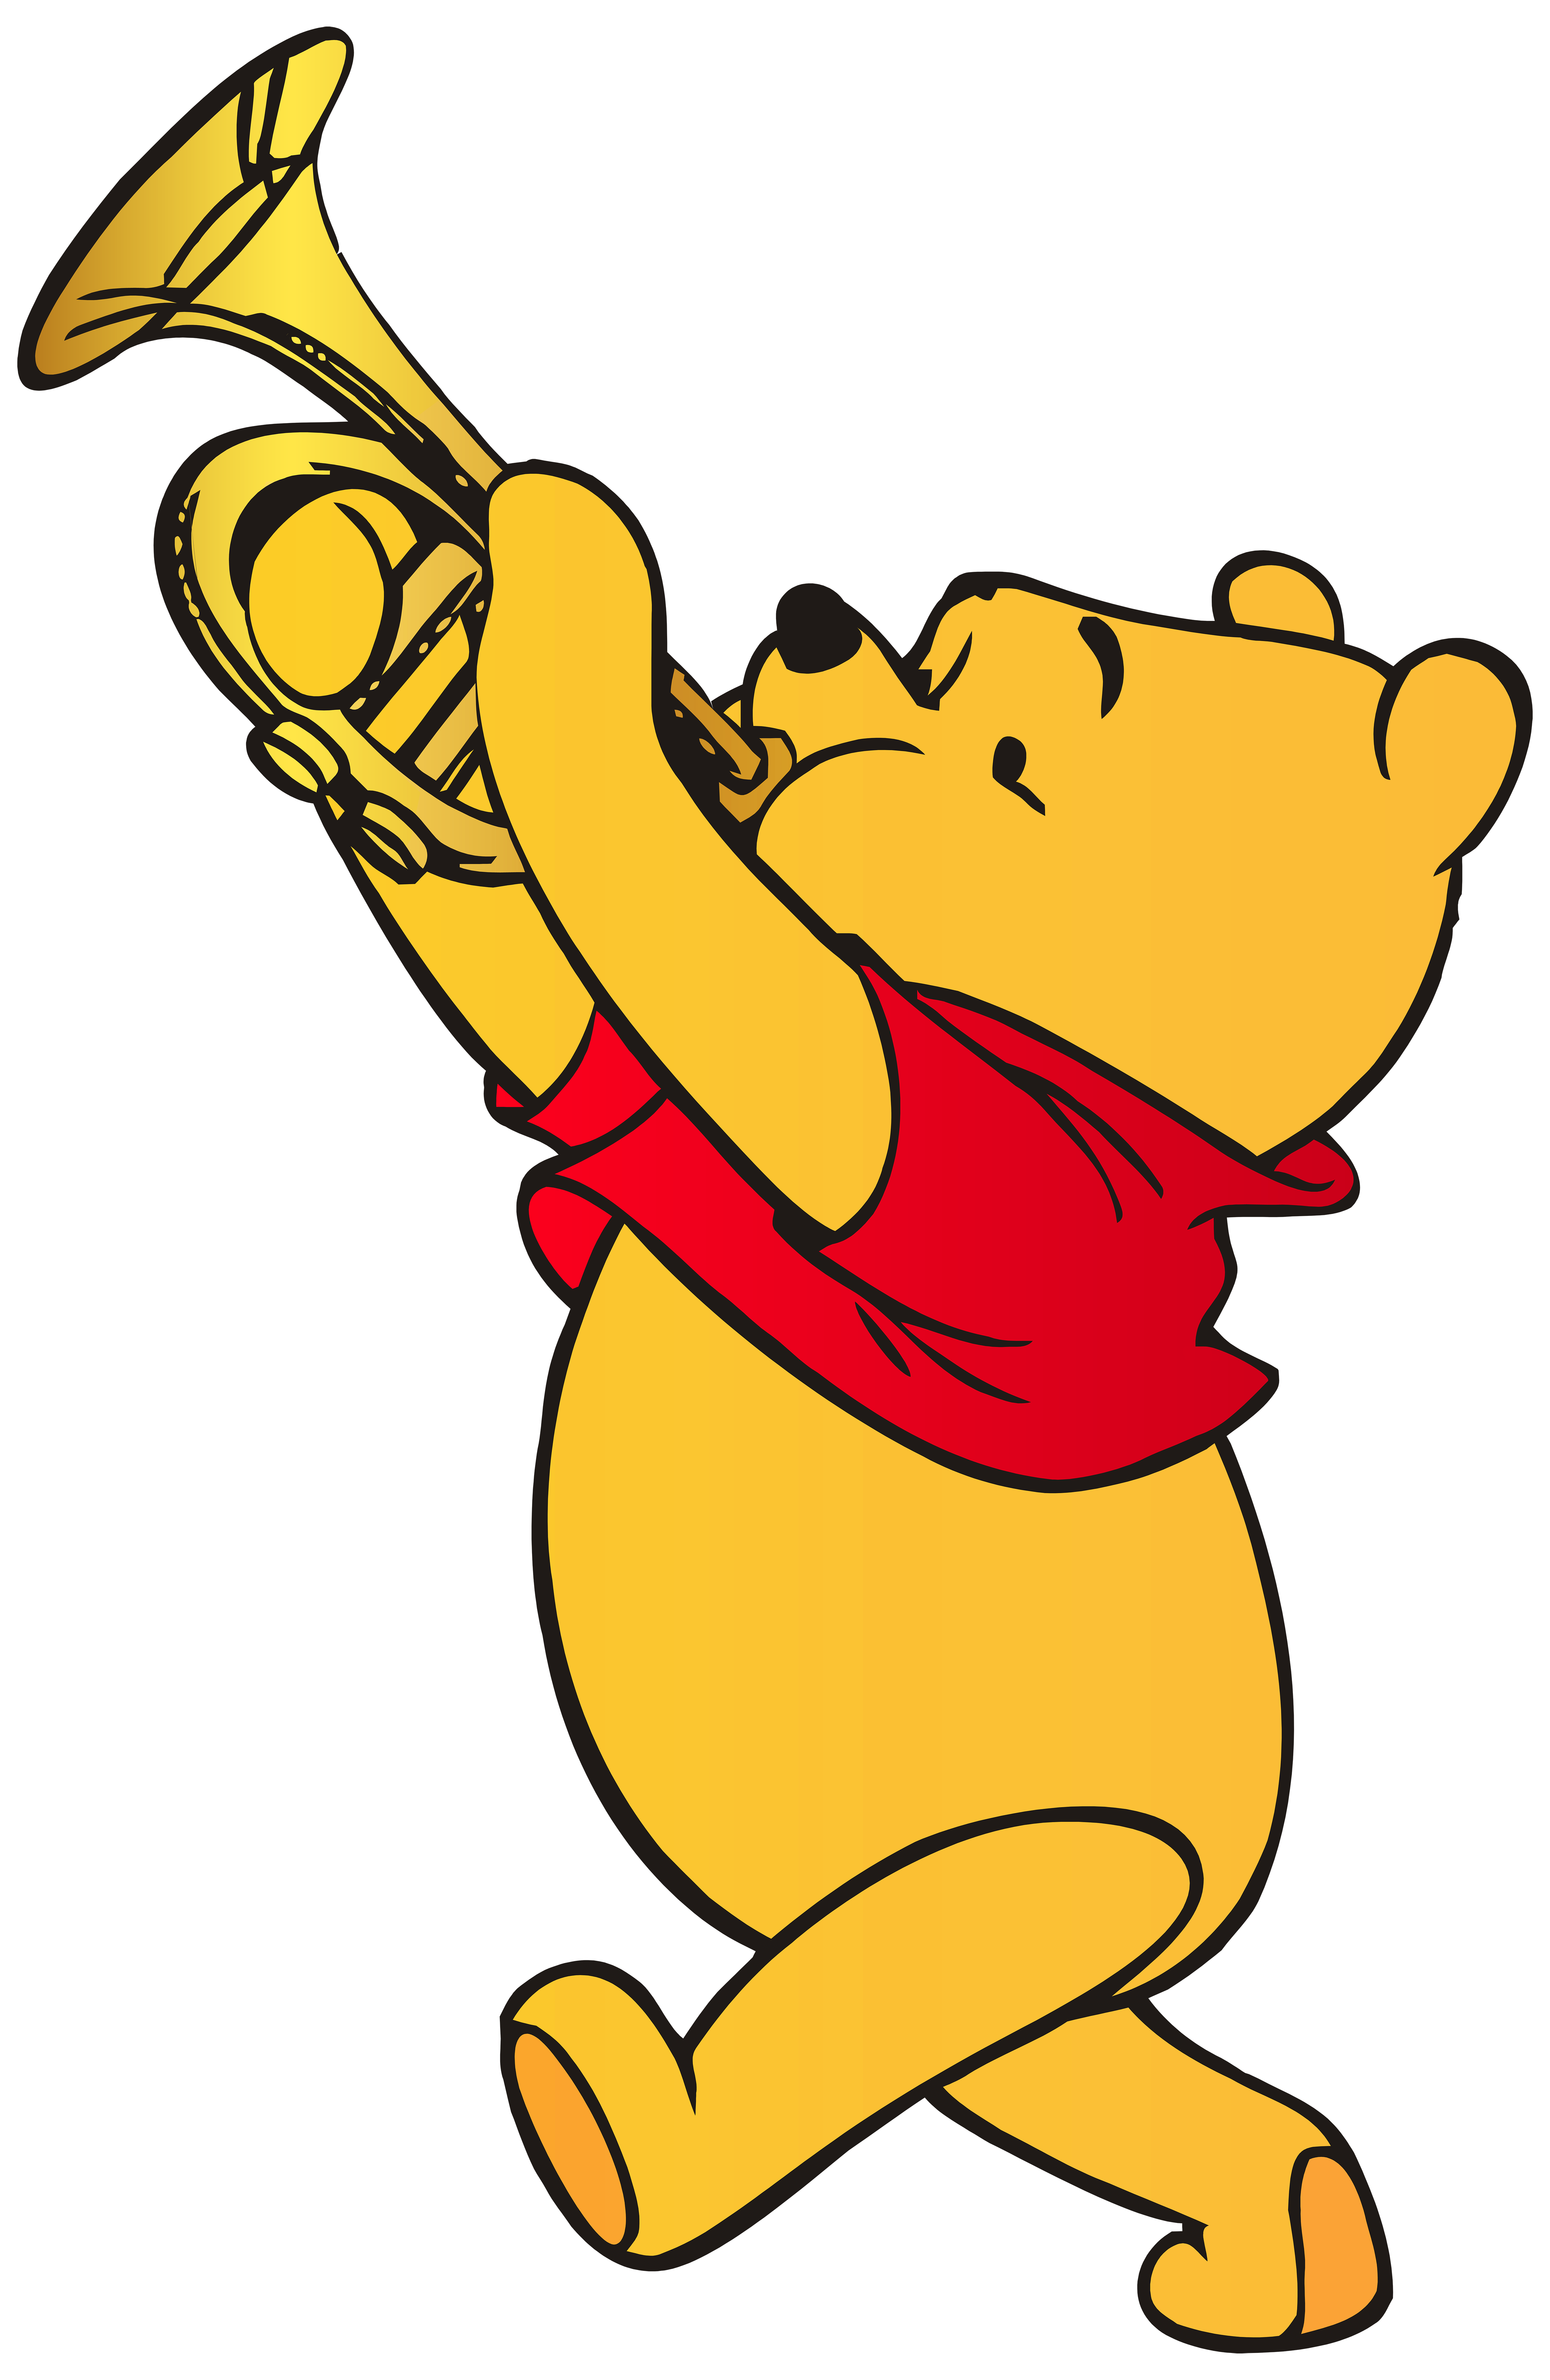 picture download Mickey waffle clipart. Winnie the pooh playing